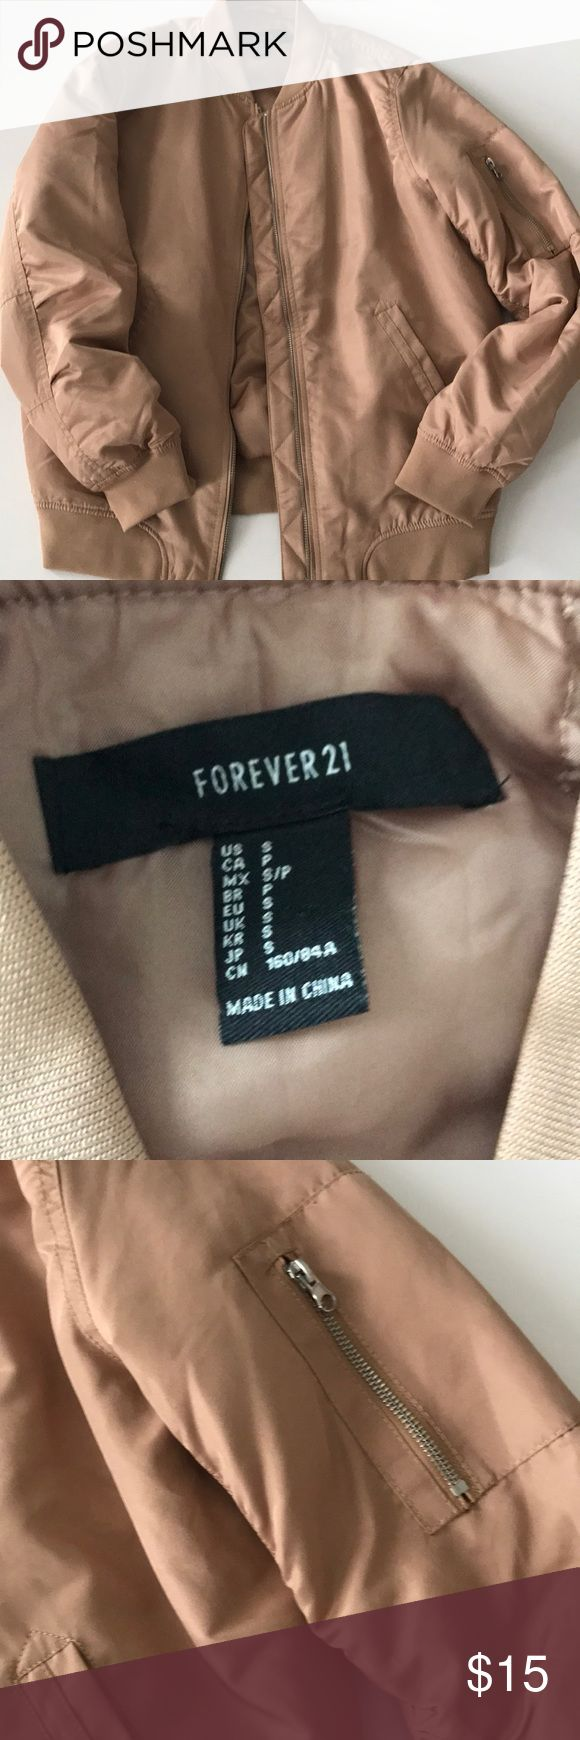 Forever 21 Tan Bomber Jacket Sz S Forever 21 Tan Bomber Jacket Sz S. Brand New, never worn. Tiny stain on bottom left by zipper (must have happened during transport). Haven't tried washing it since it's brand new. Great Jacket, just haven't had a chance to wear it so it's time to get rid of it. Forever 21 Jackets & Coats